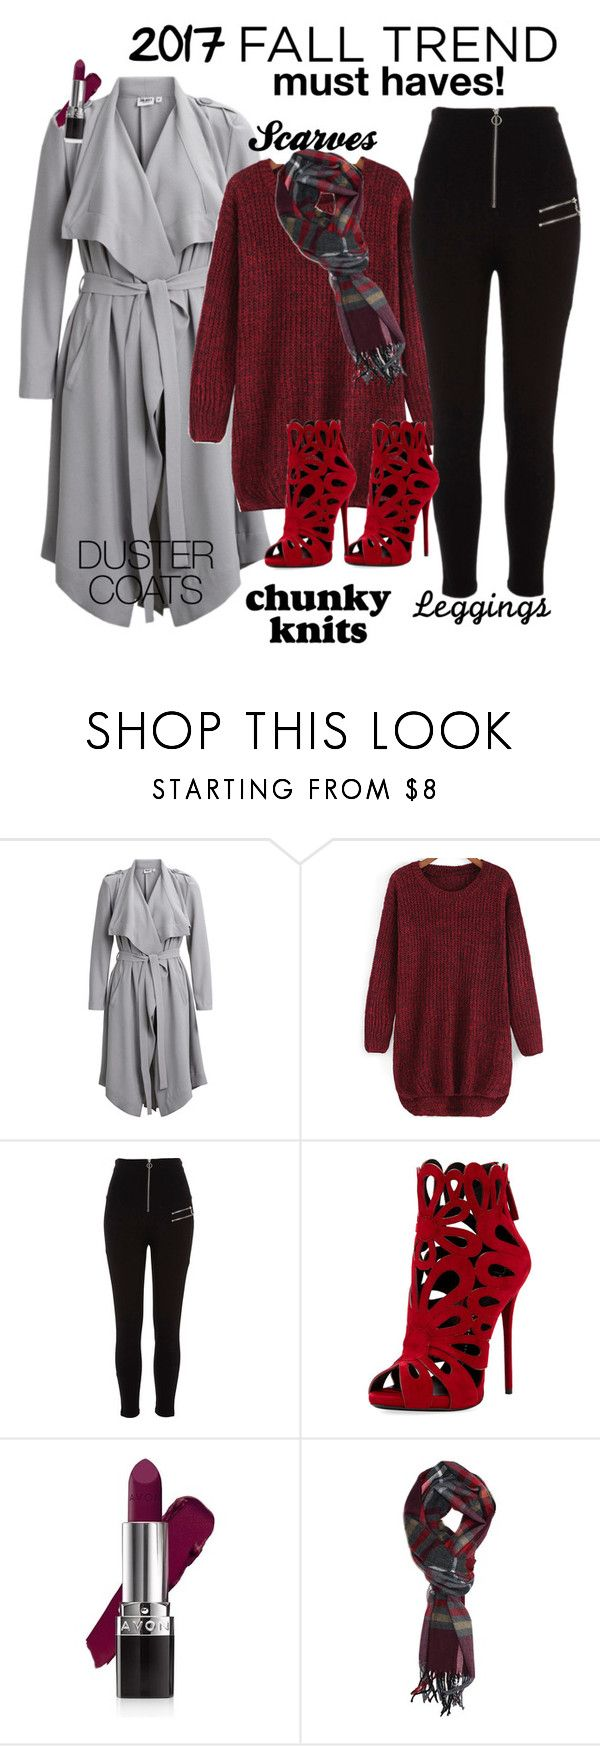 """""""Autumn Trends 2017"""" by dobesht ❤ liked on Polyvore featuring Object Collectors Item, River Island, Giuseppe Zanotti and Avon"""